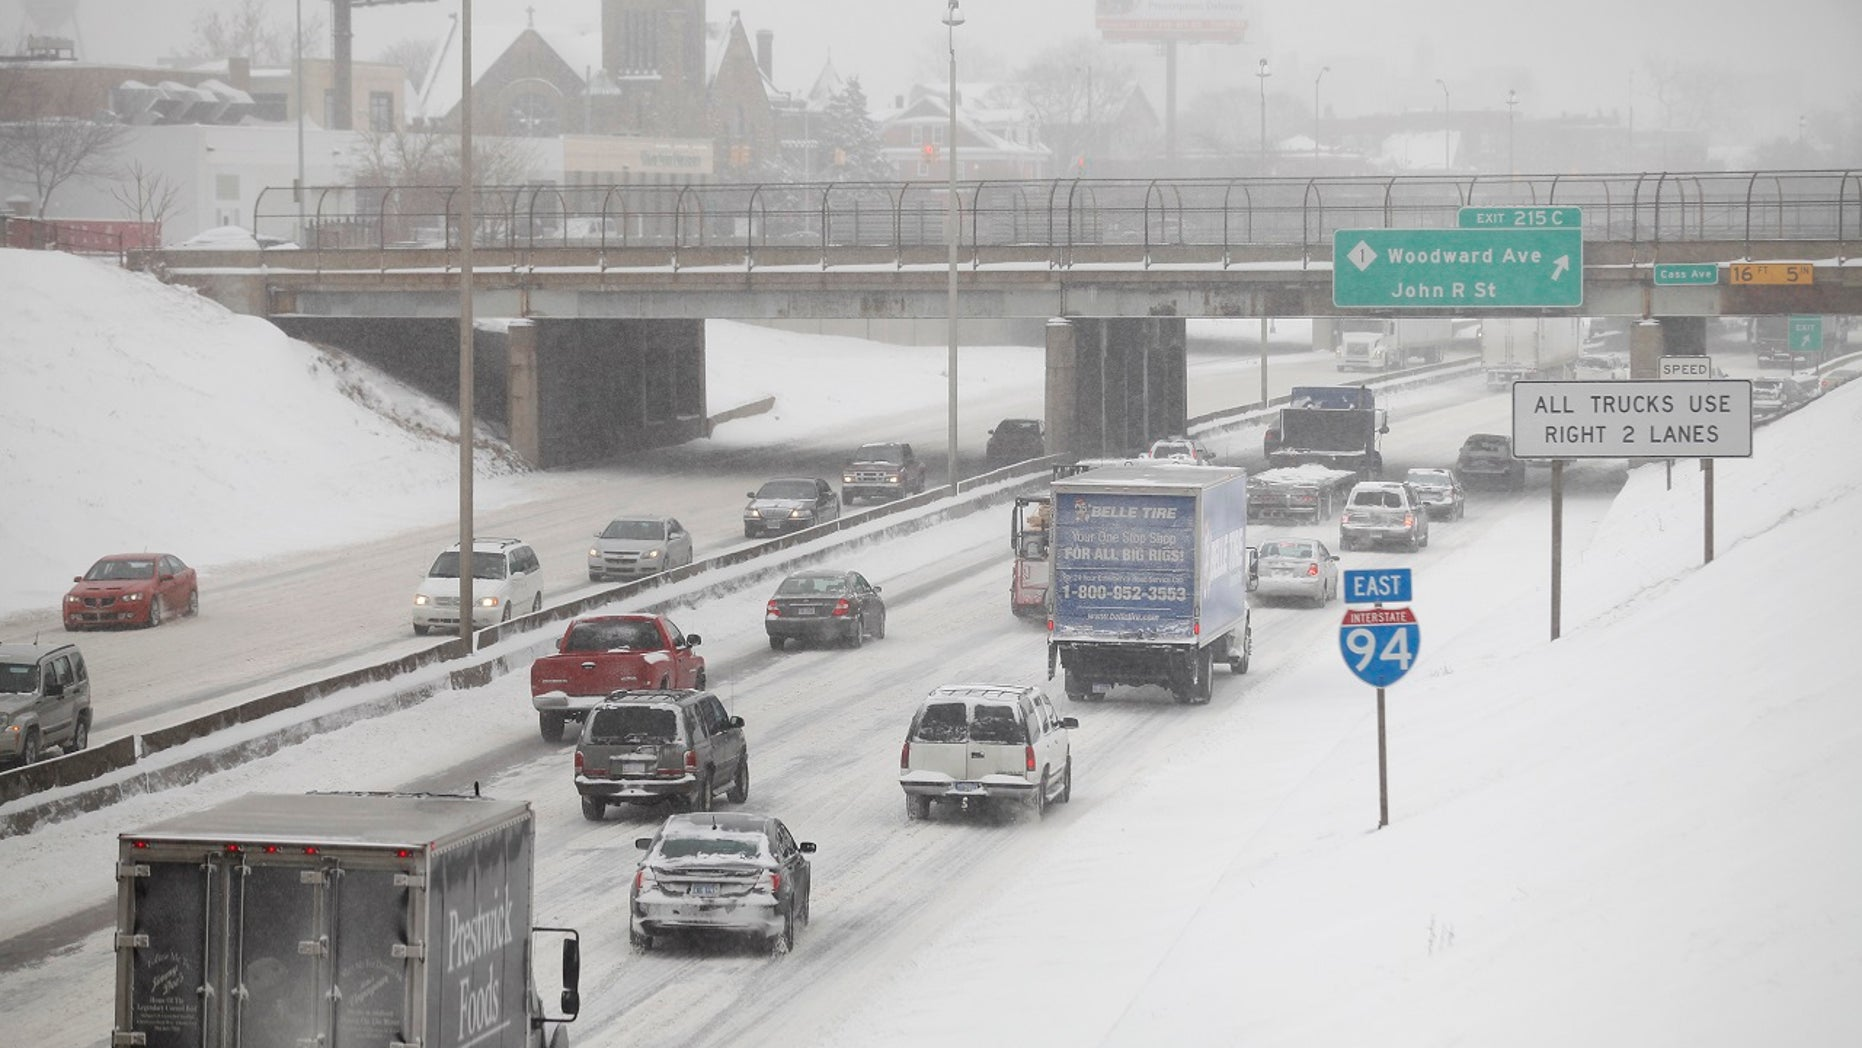 Drivers can follow several winter driving tips to deal with inclement weather.